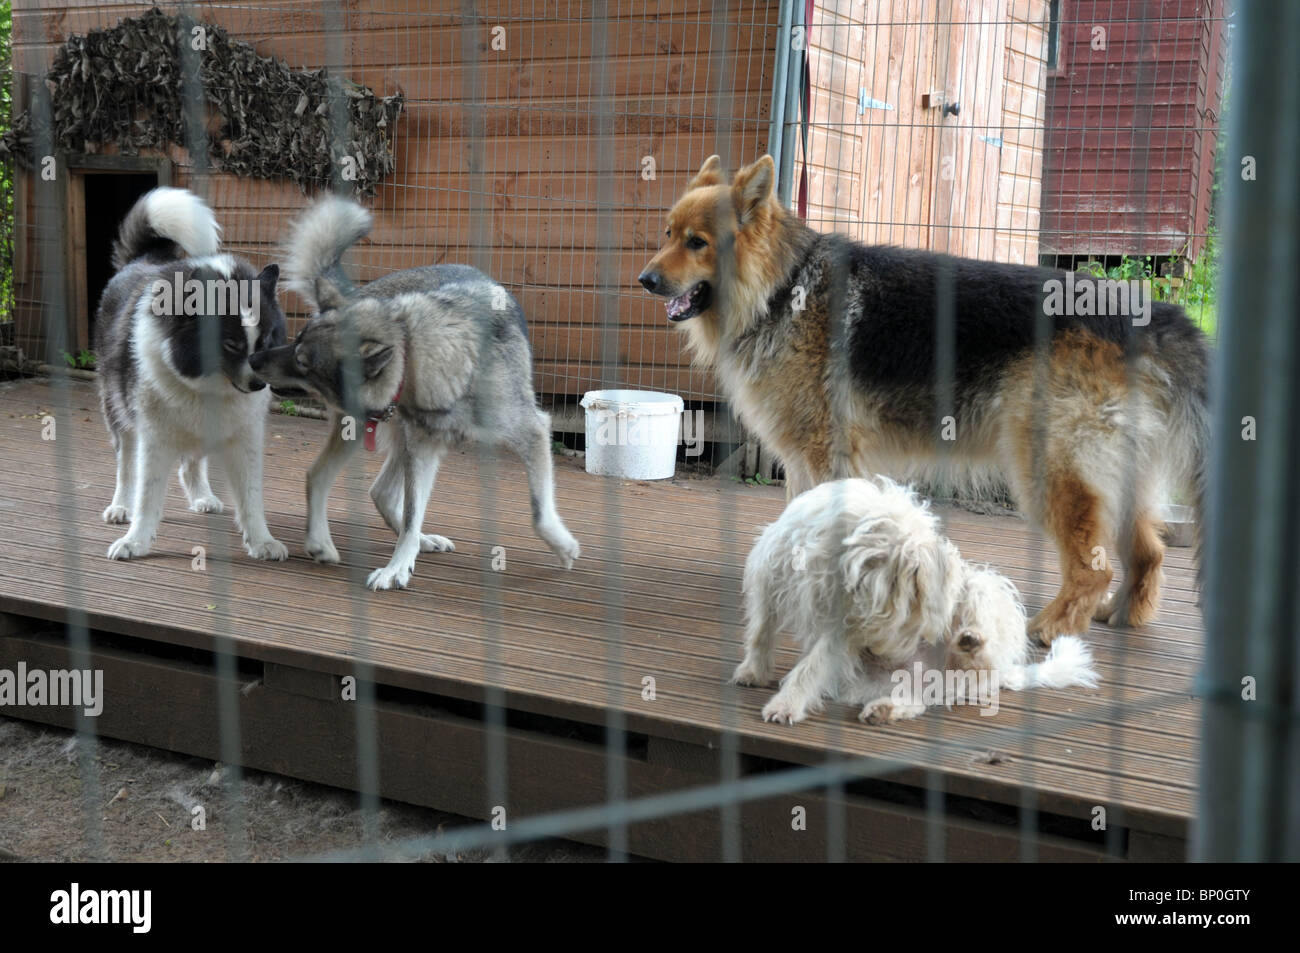 our four family pet dogs outside in their dog run - Stock Image